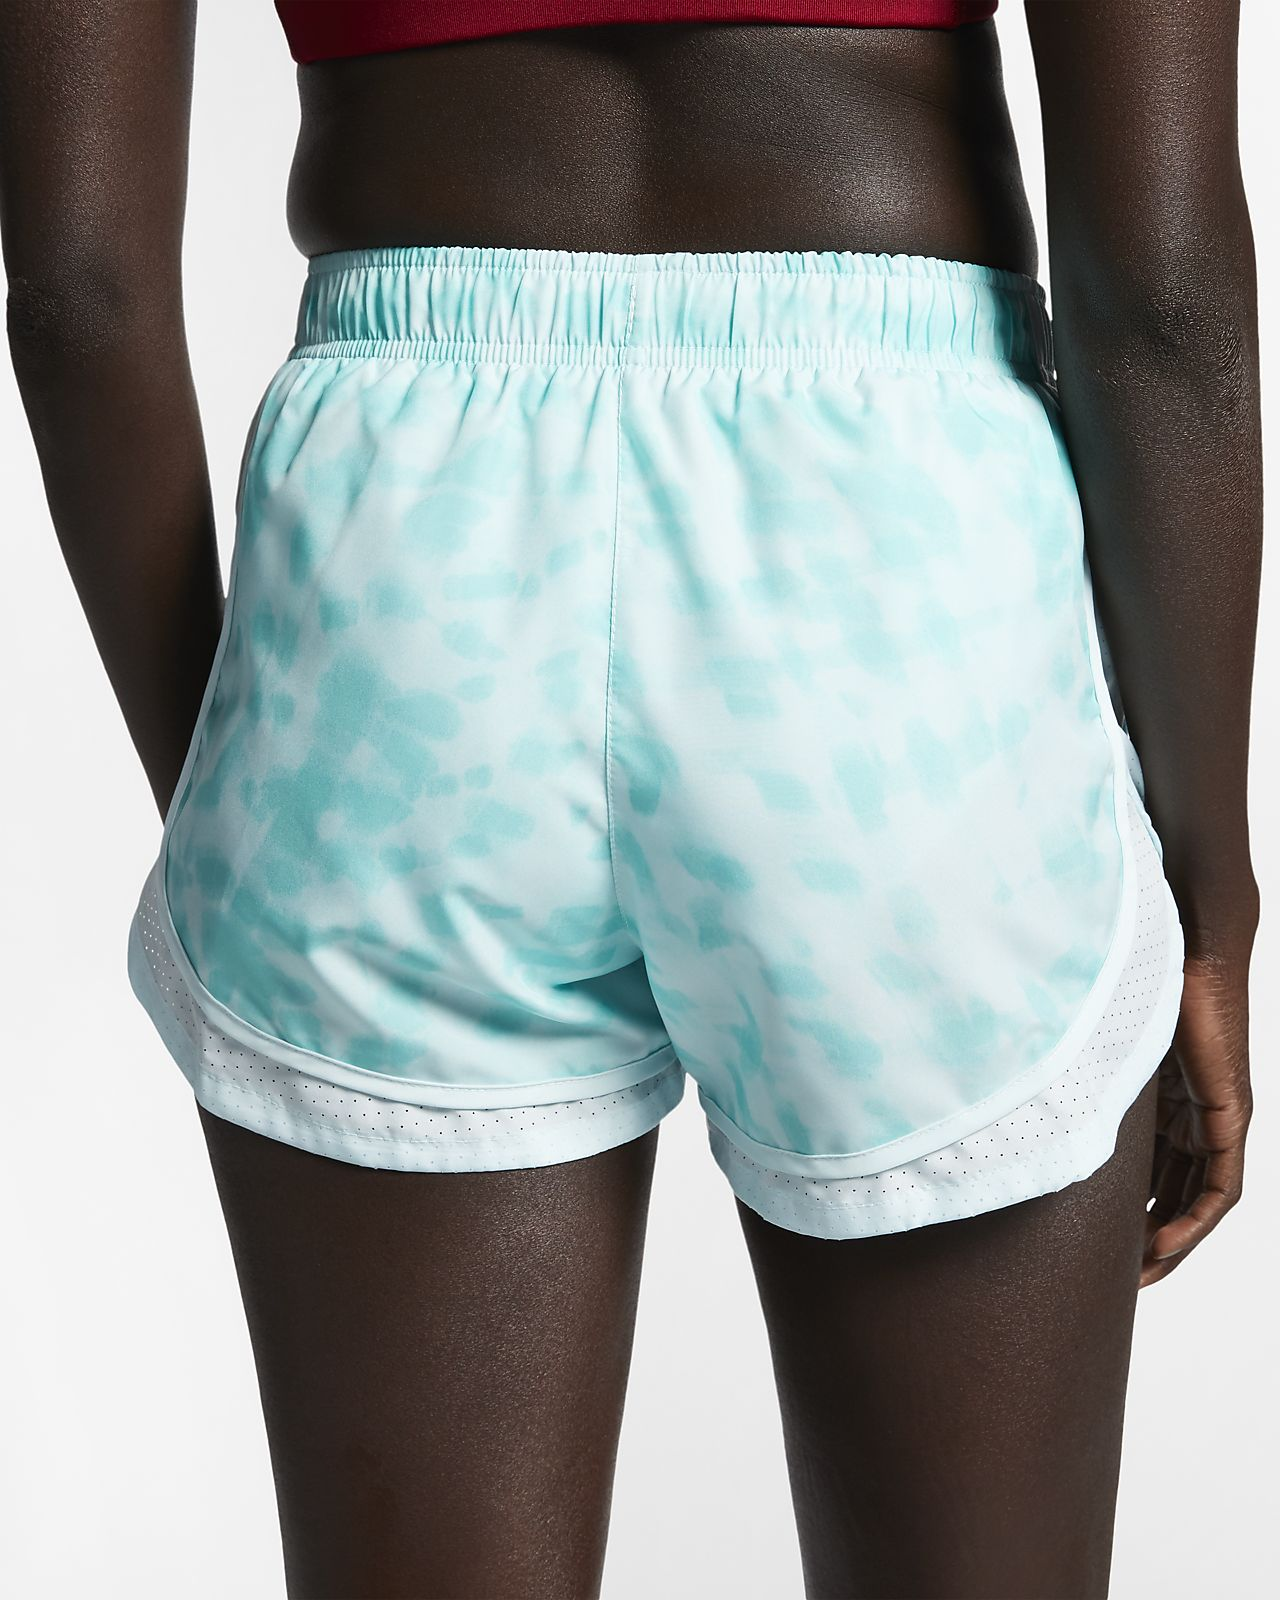 separation shoes ecca5 02c5c Women s Printed Running Shorts. Nike Tempo